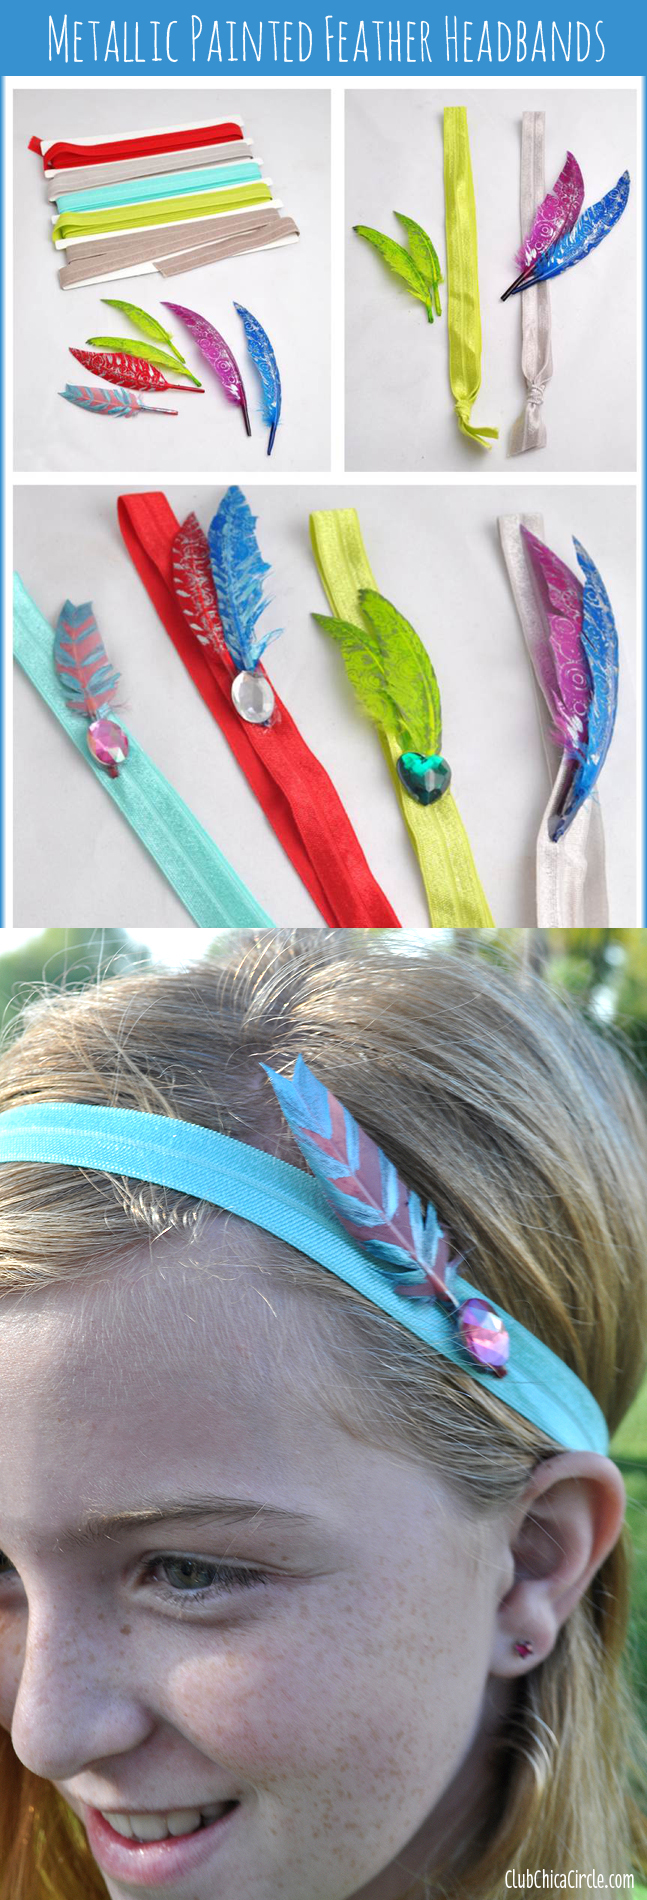 Painted Feather Headbands DIY